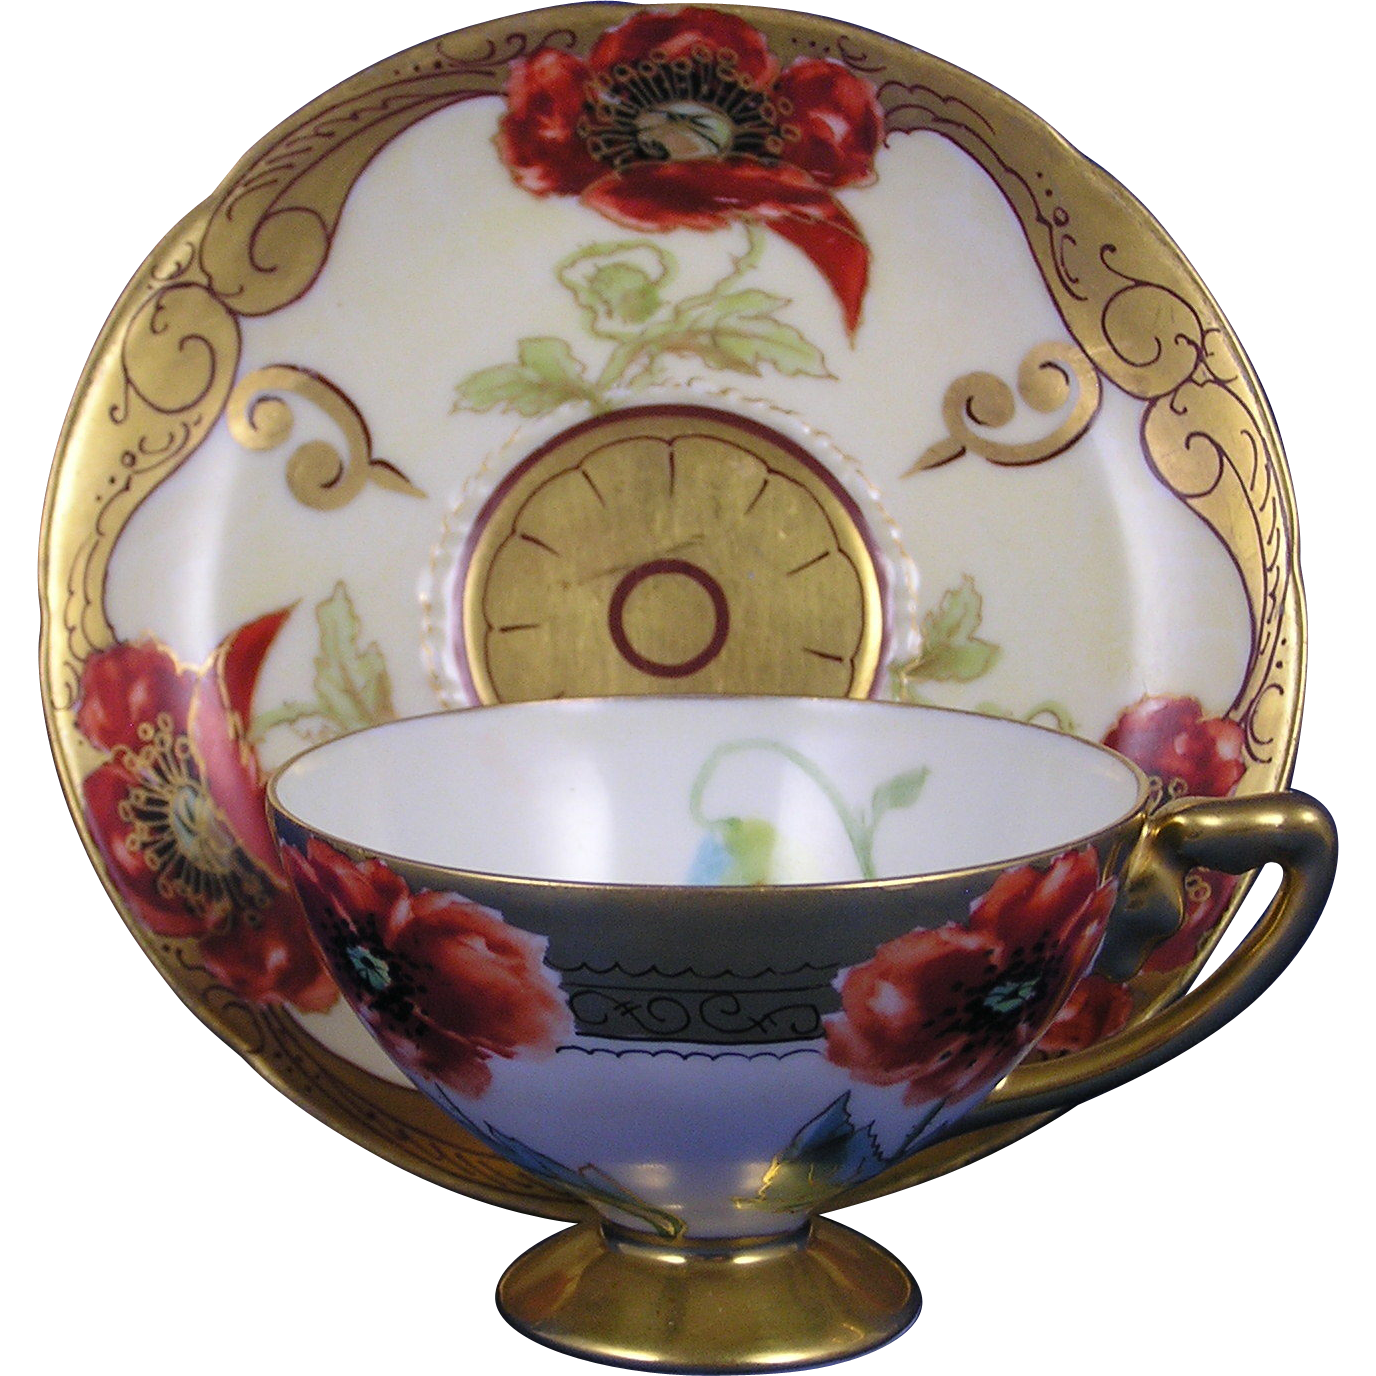 William Guerin & Co. (WG&Co.) Limoges & Rosenthal Bavaria Pickard Studio Poppy Design Cup & Saucer (c.1905-1910)